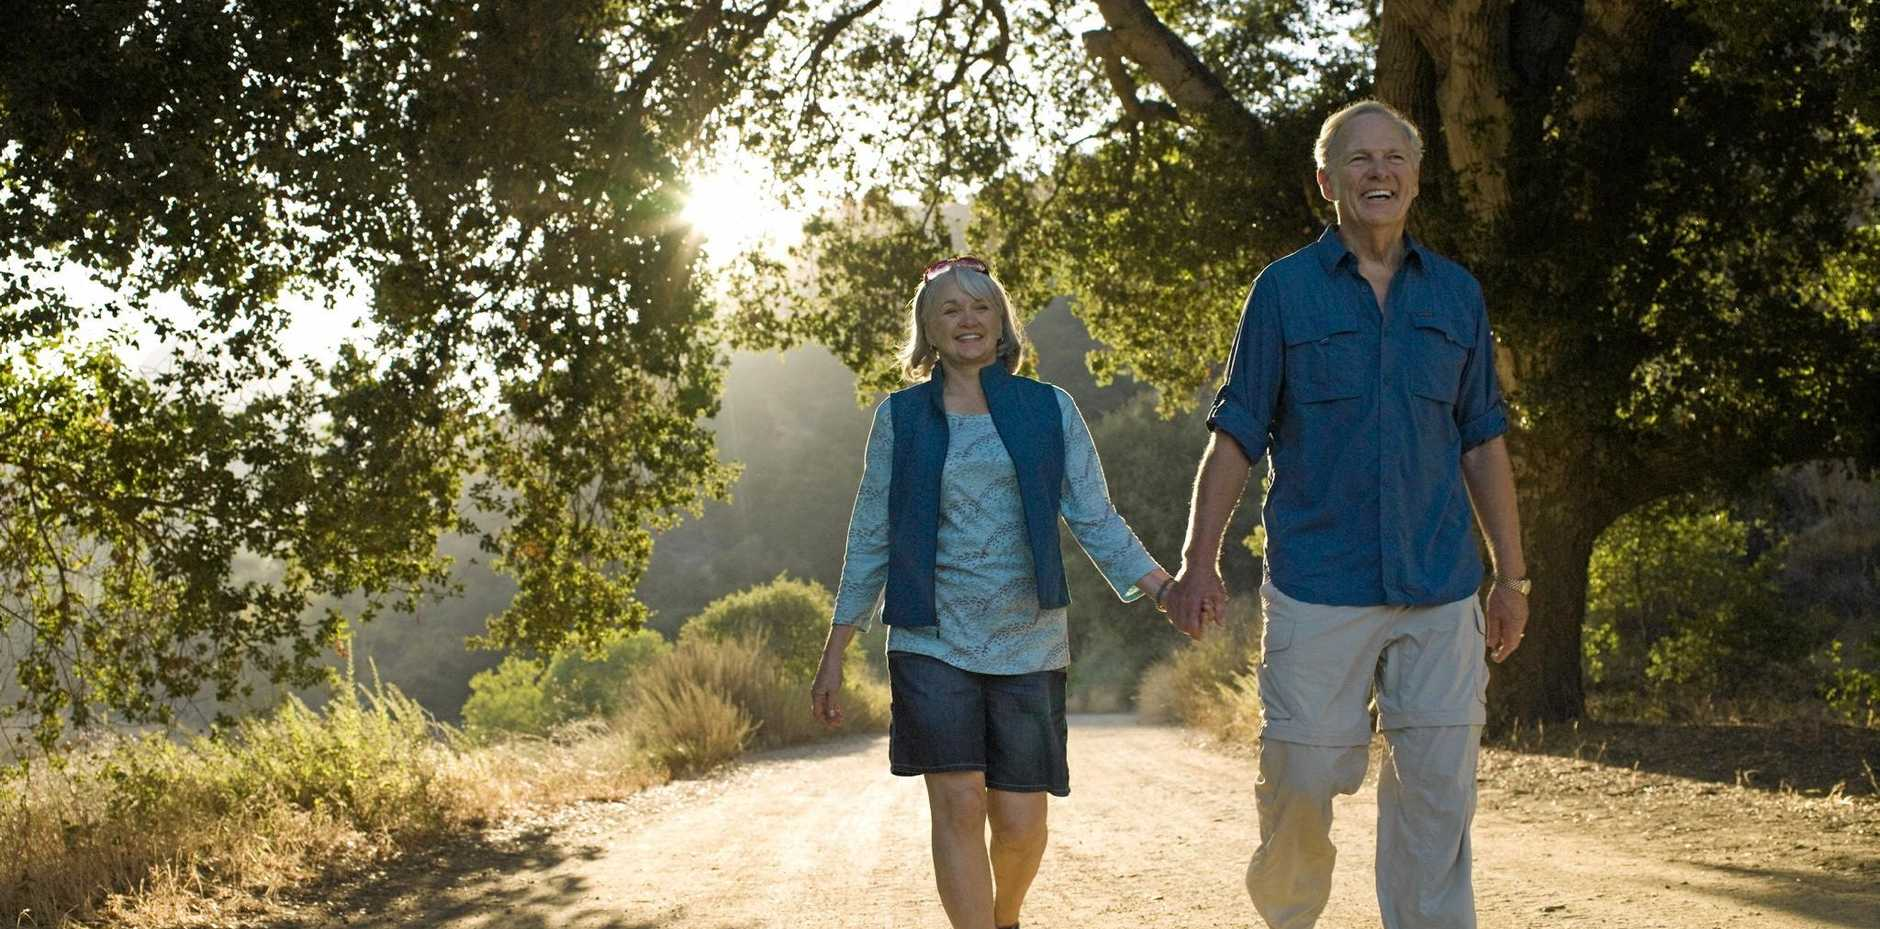 LIVE BETTER: Celebrate National Heart Week by starting your walking program today.